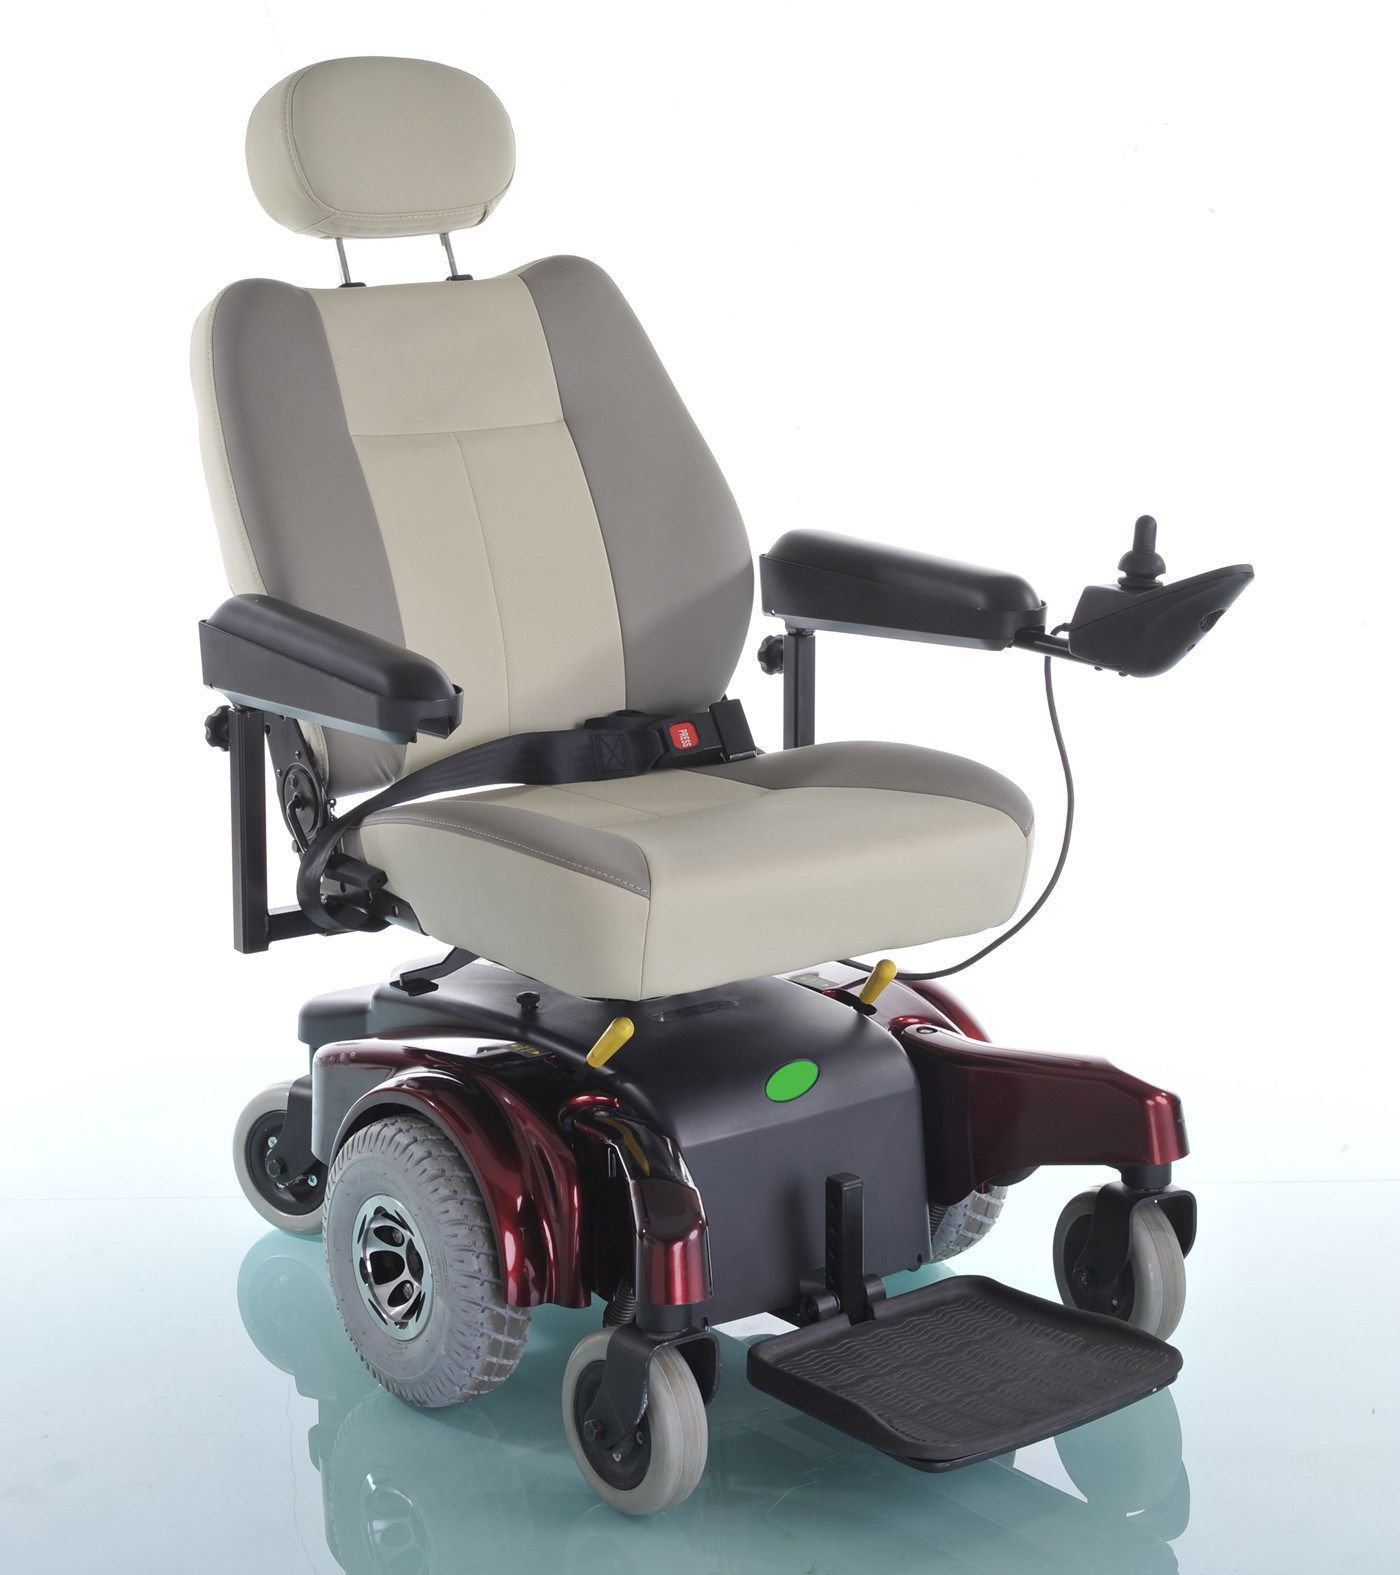 Bed Wheelchair Power Wheelchairs That Recline Like A Bed China Kse 01 Half